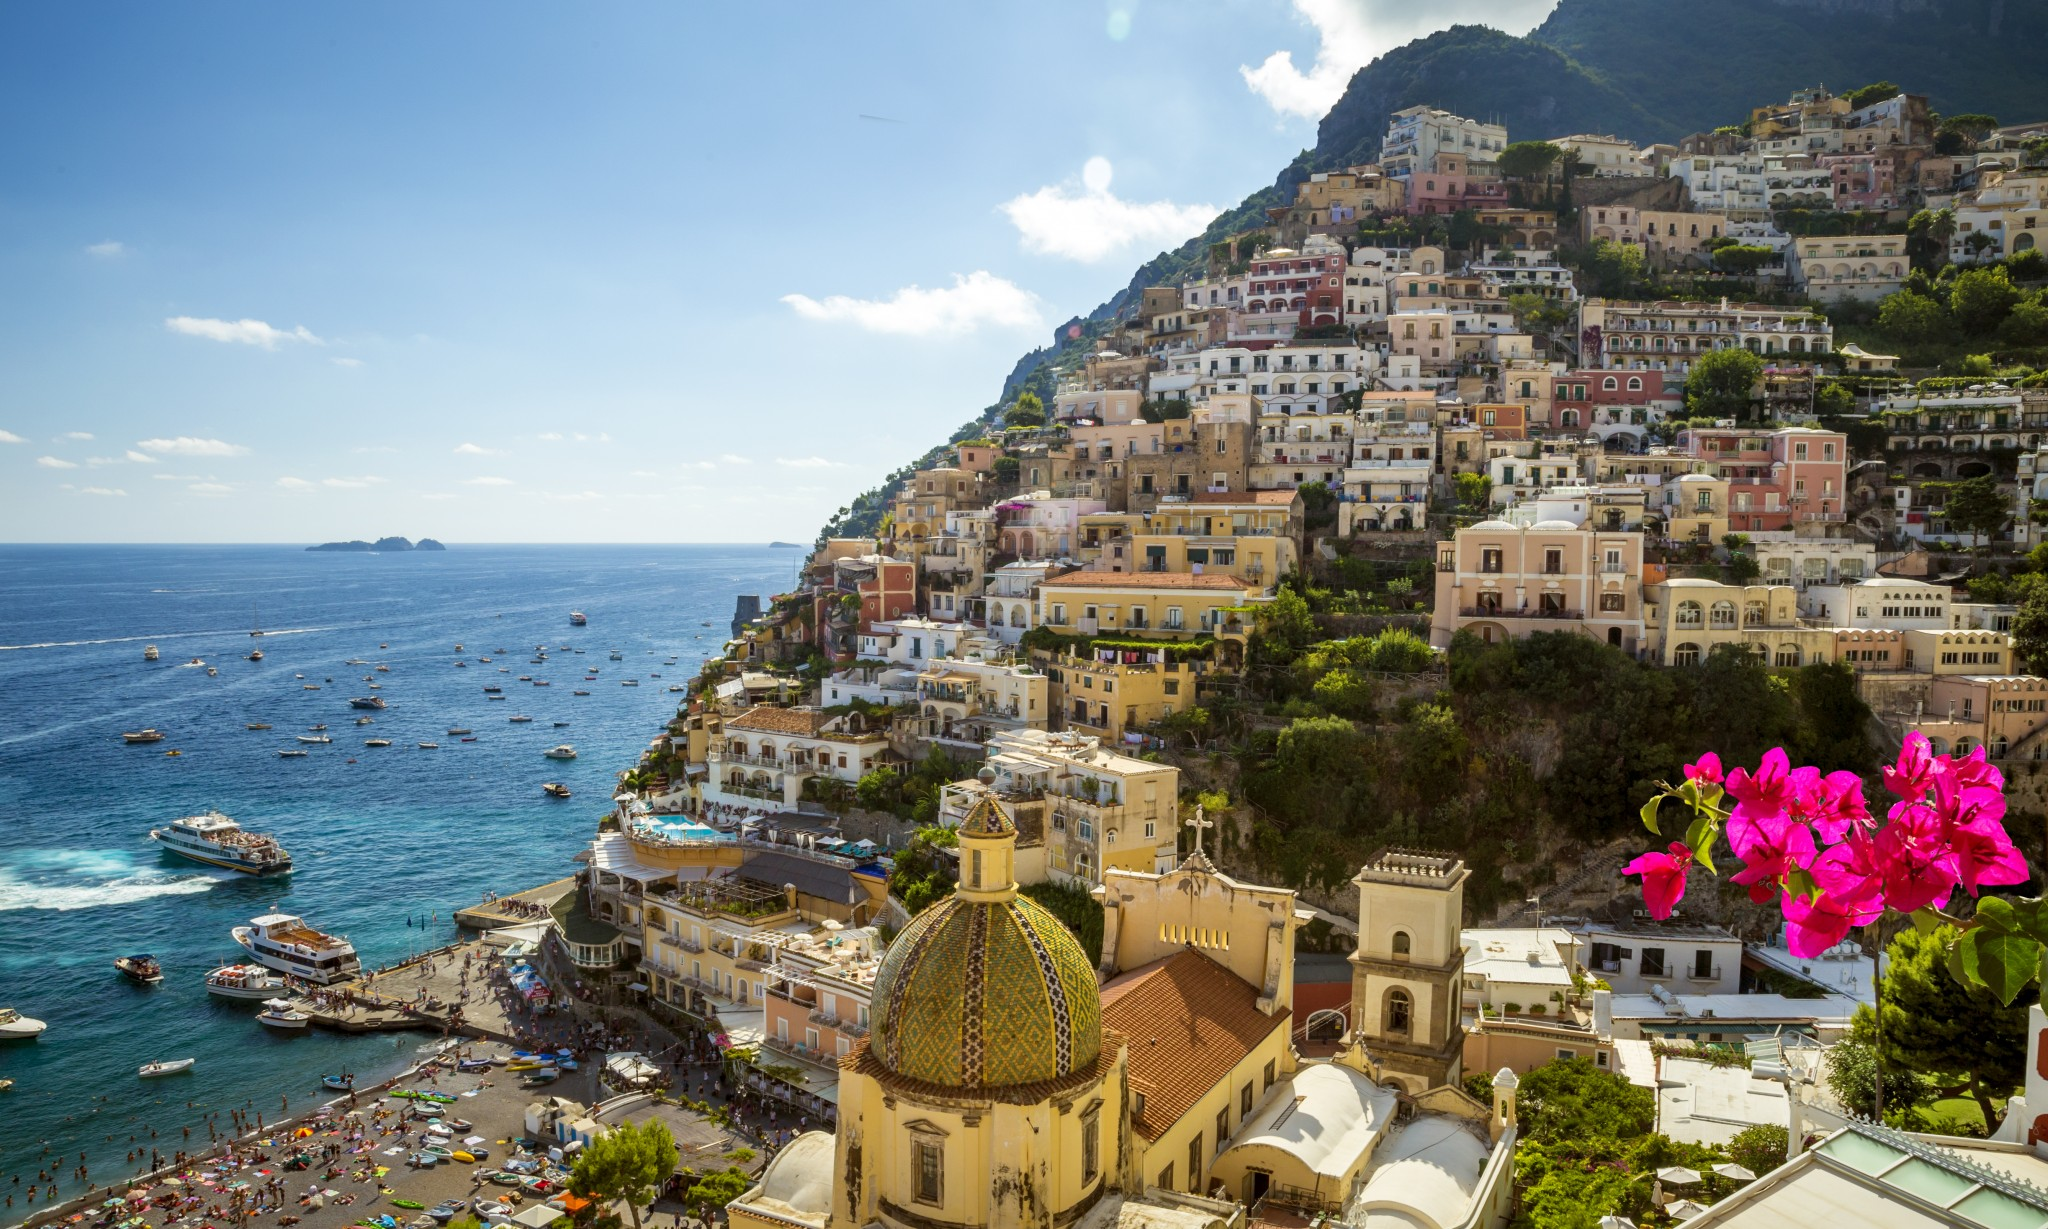 Fly direct from the United States to the Amalfi Coast, Italy